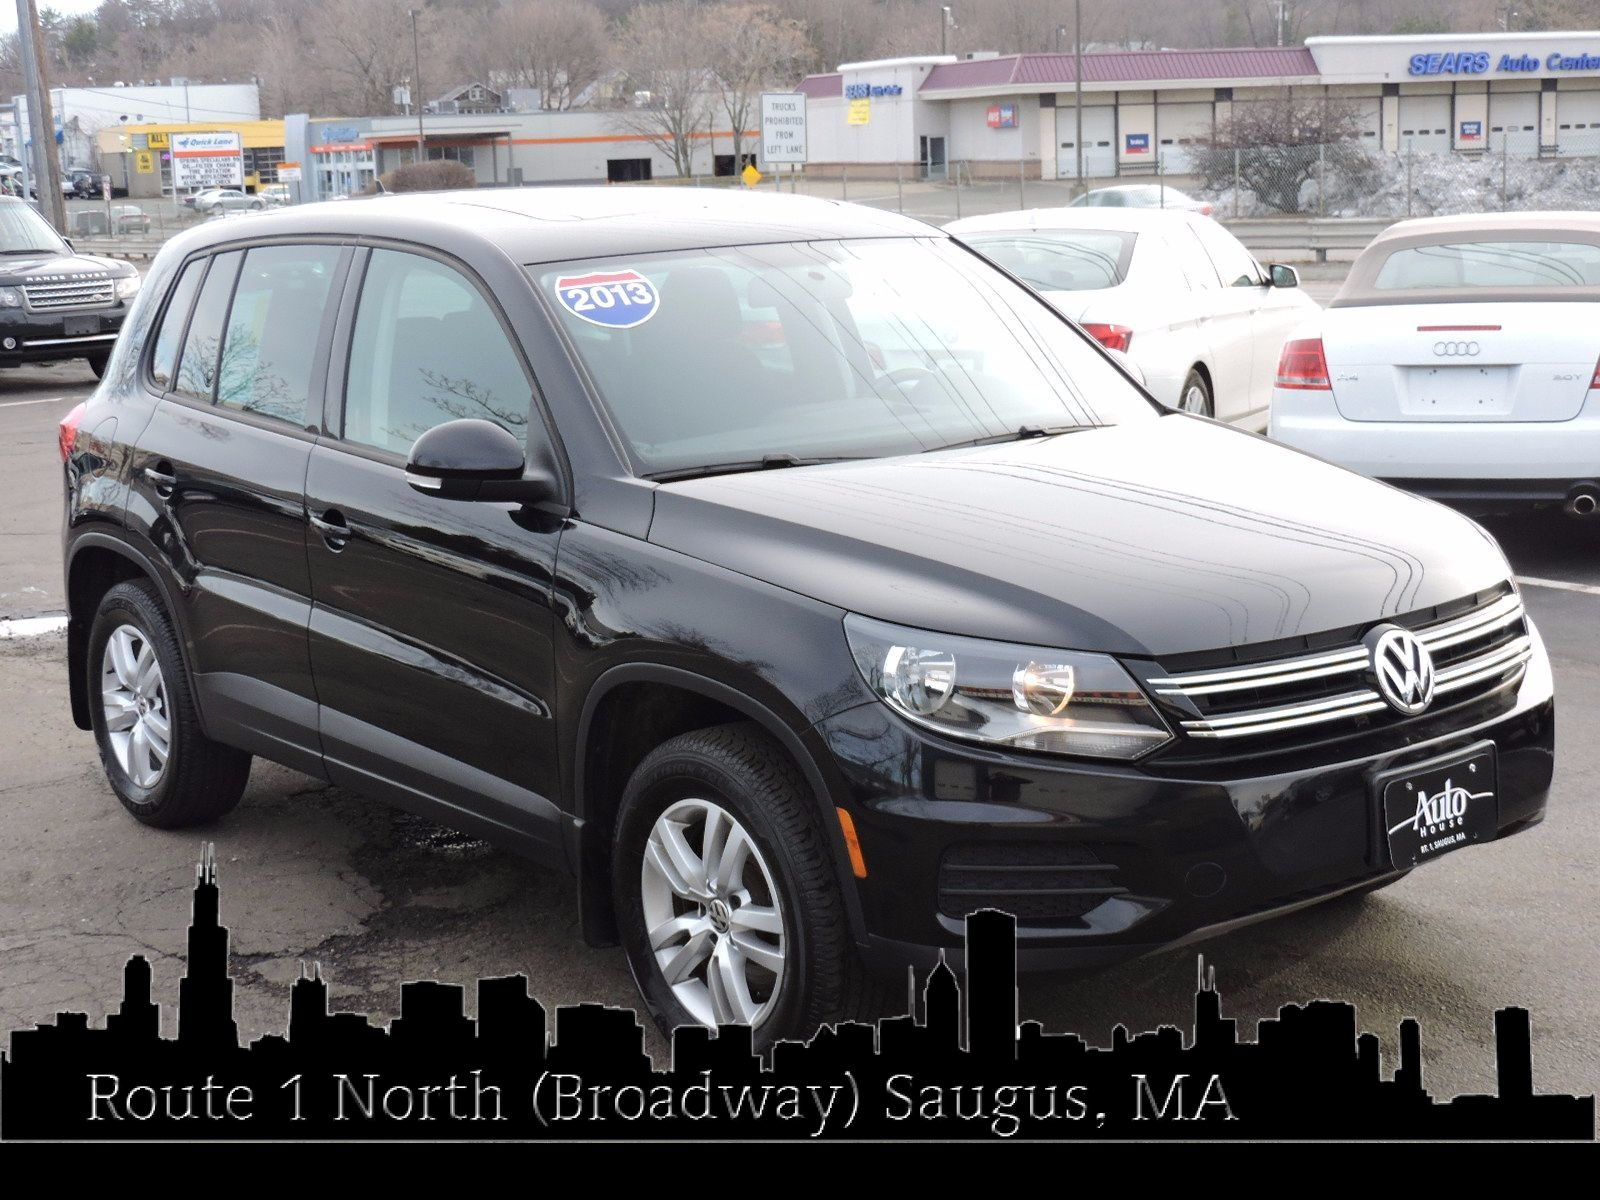 2013 Volkswagen Tiguan - 4Motion - All Wheel Drive